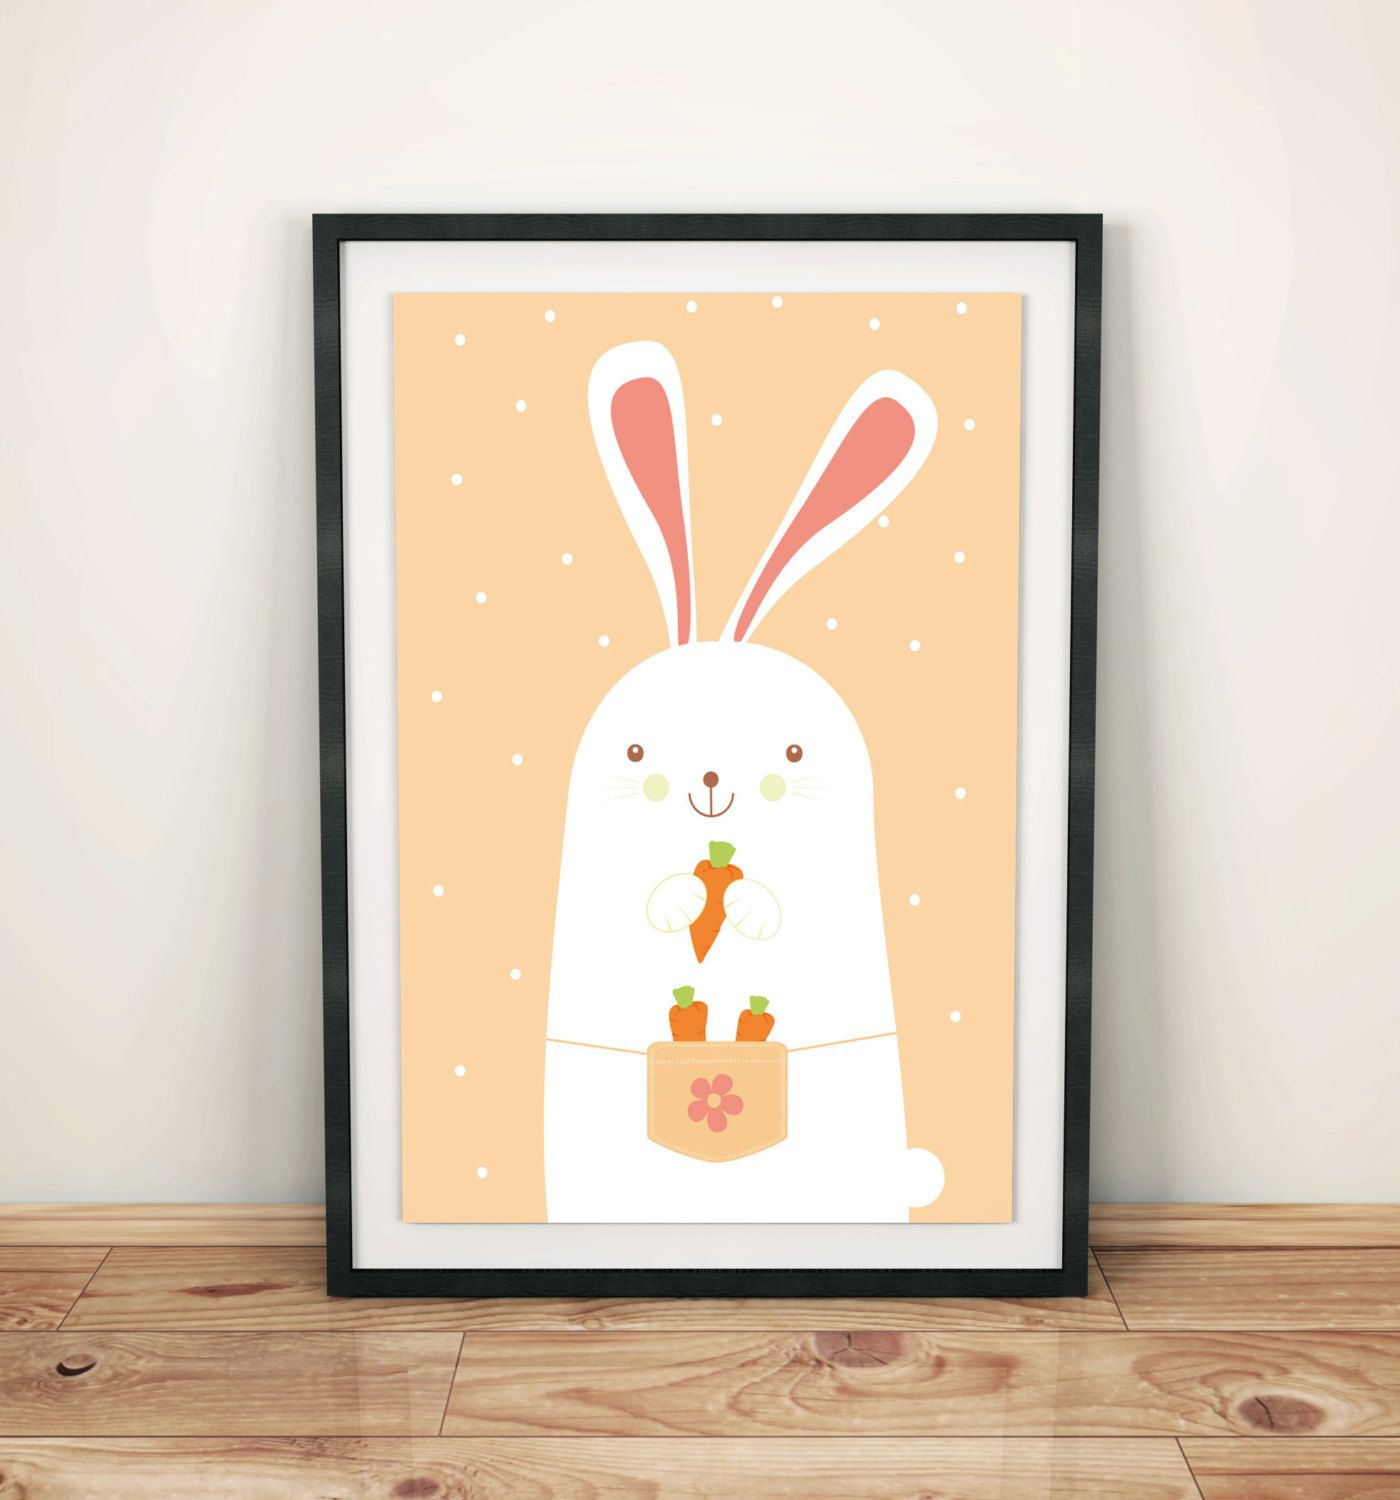 Nursery prints poster with sweet rarrbit, wall art decor, kids room ...